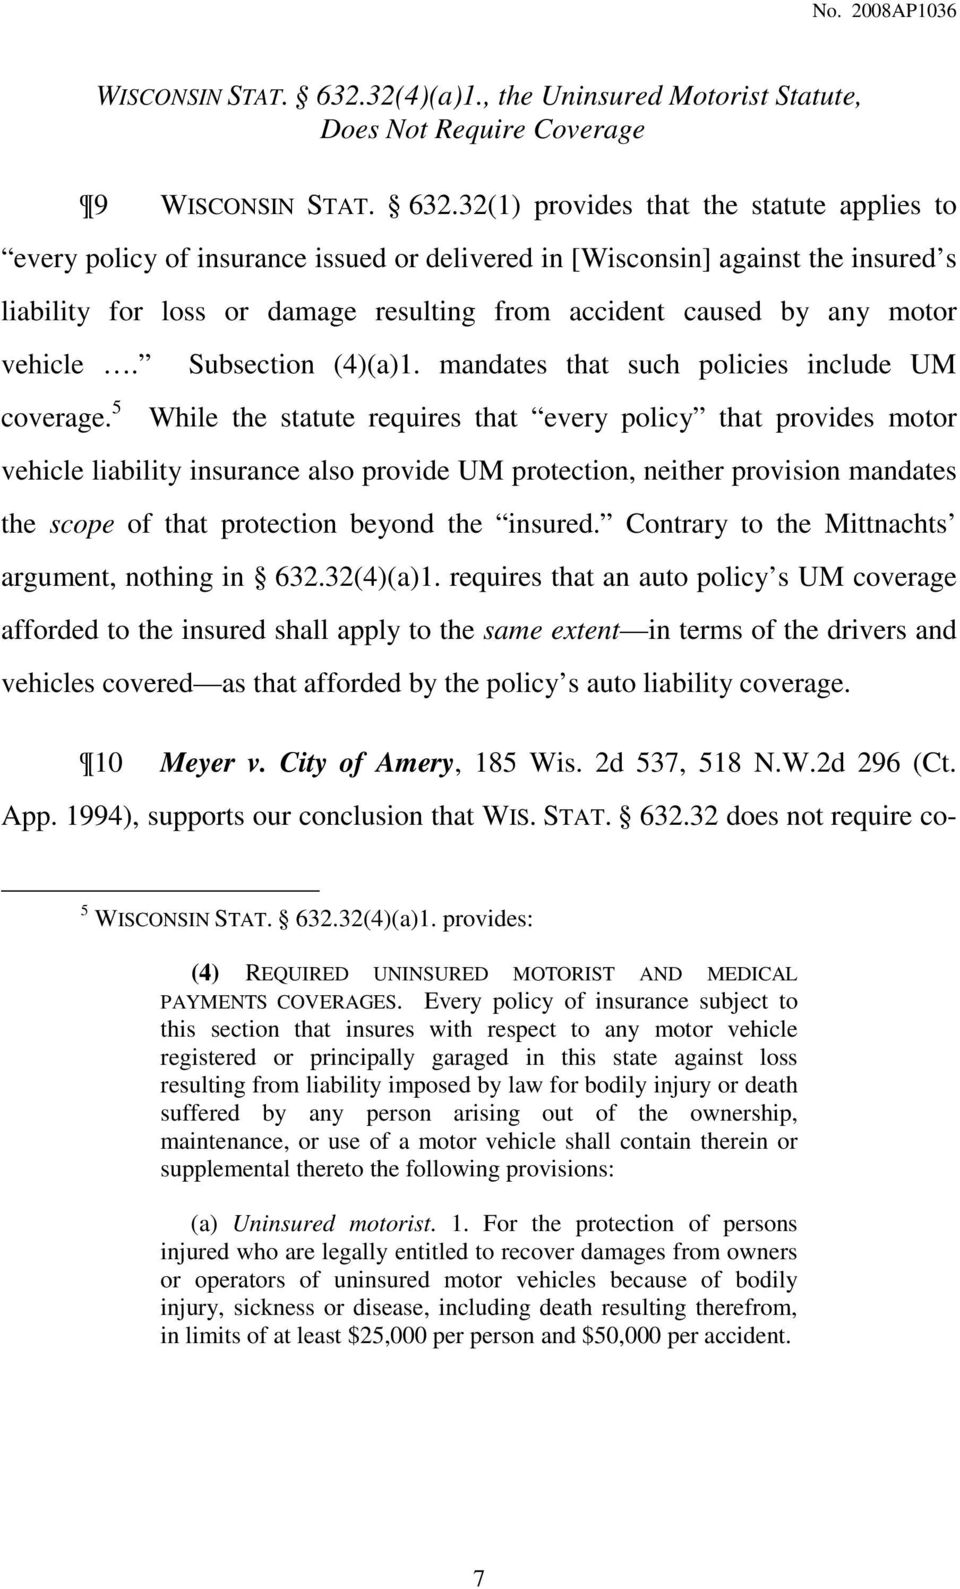 , the Uninsured Motorist Statute, Does Not Require Coverage 9 32(1) provides that the statute applies to every policy of insurance issued or delivered in [Wisconsin] against the insured s liability